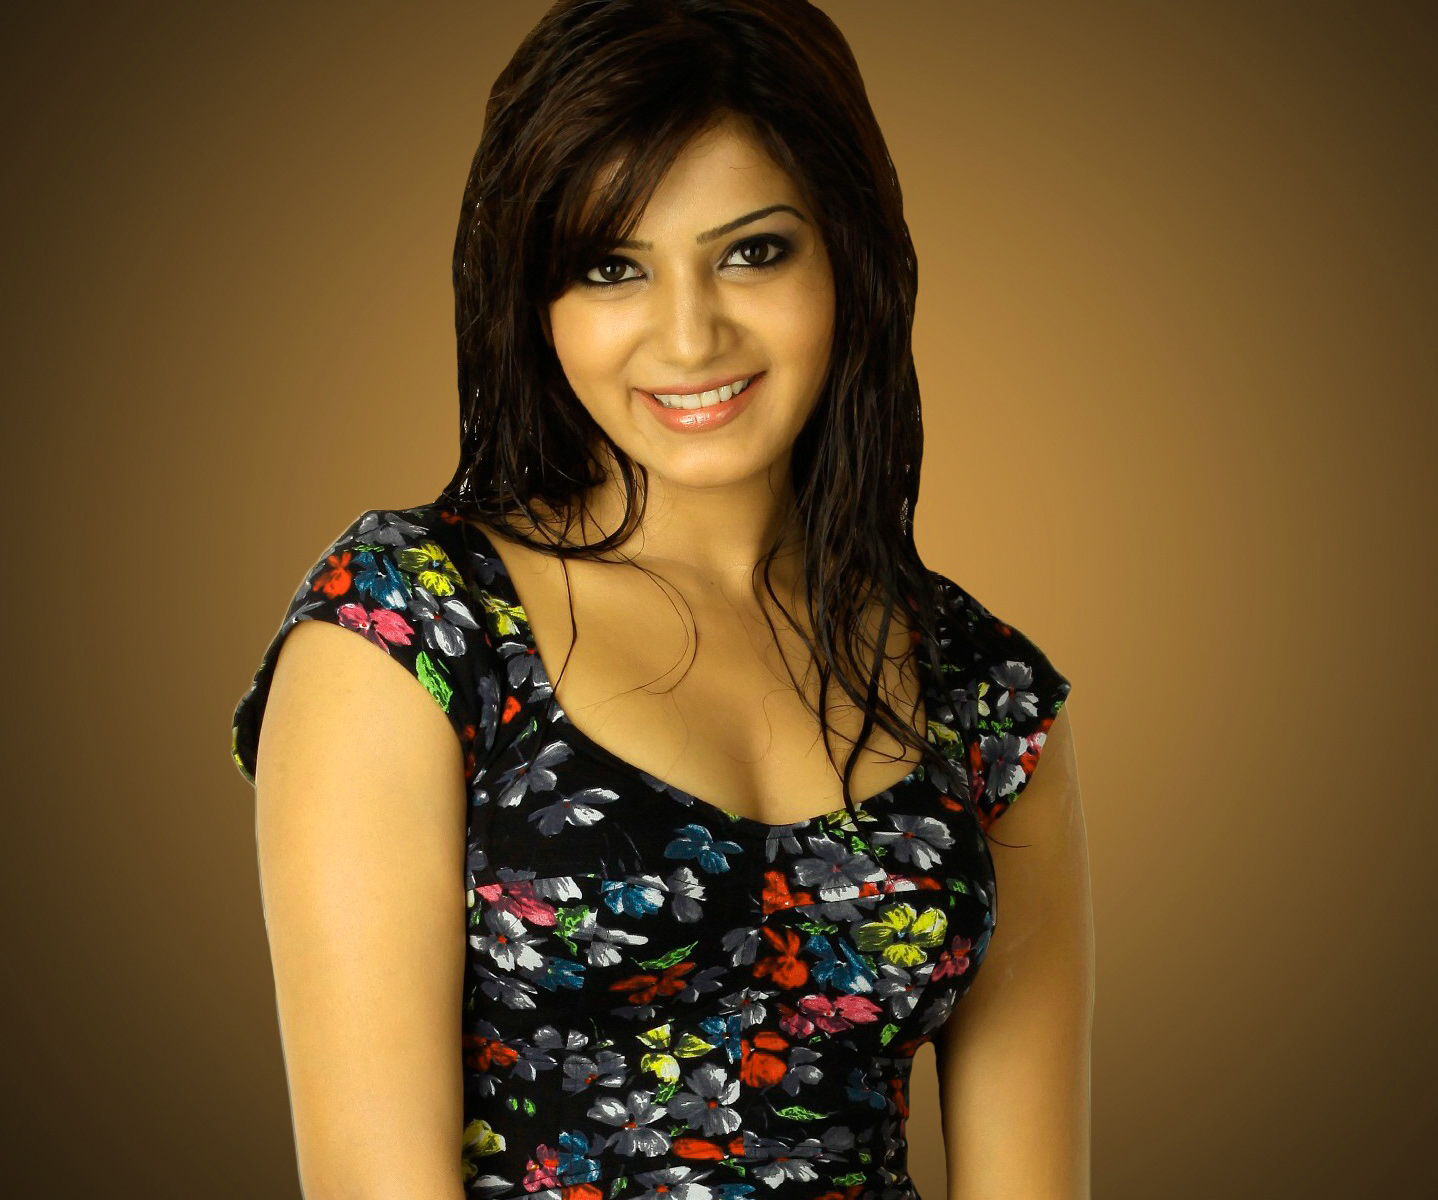 South Actress Images Photo Pictures Free Download For Facebook